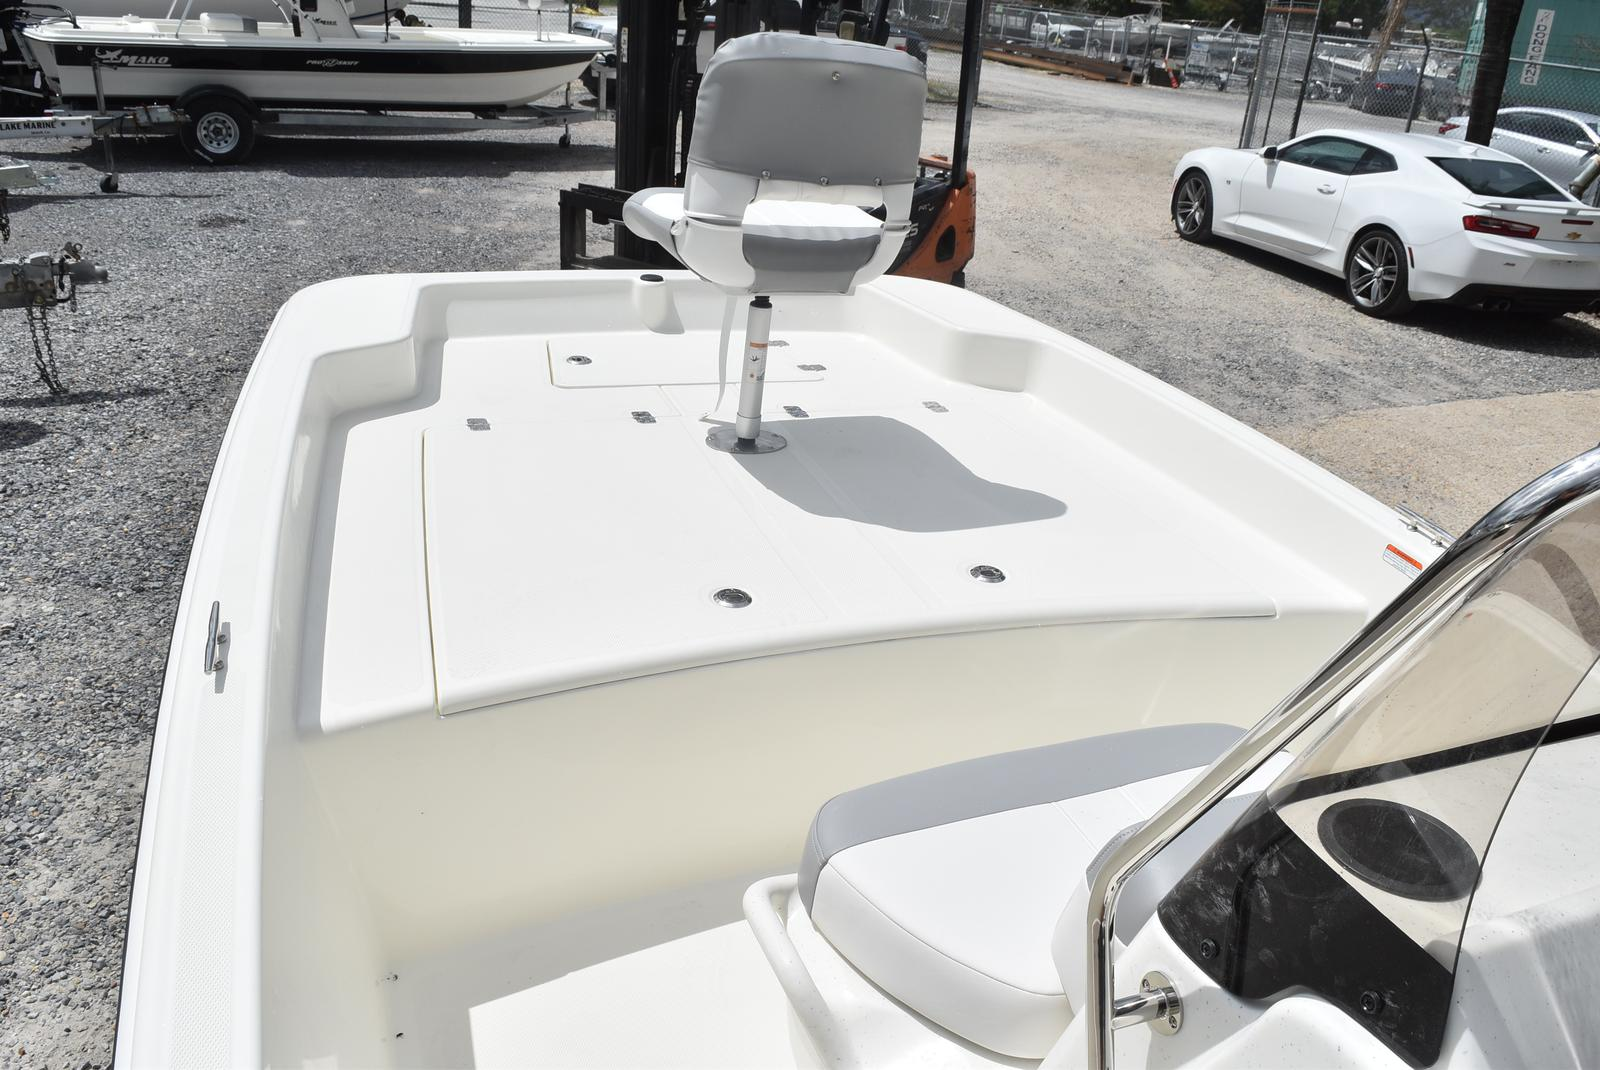 2020 Mako boat for sale, model of the boat is Pro Skiff 17, 75 ELPT & Image # 467 of 702